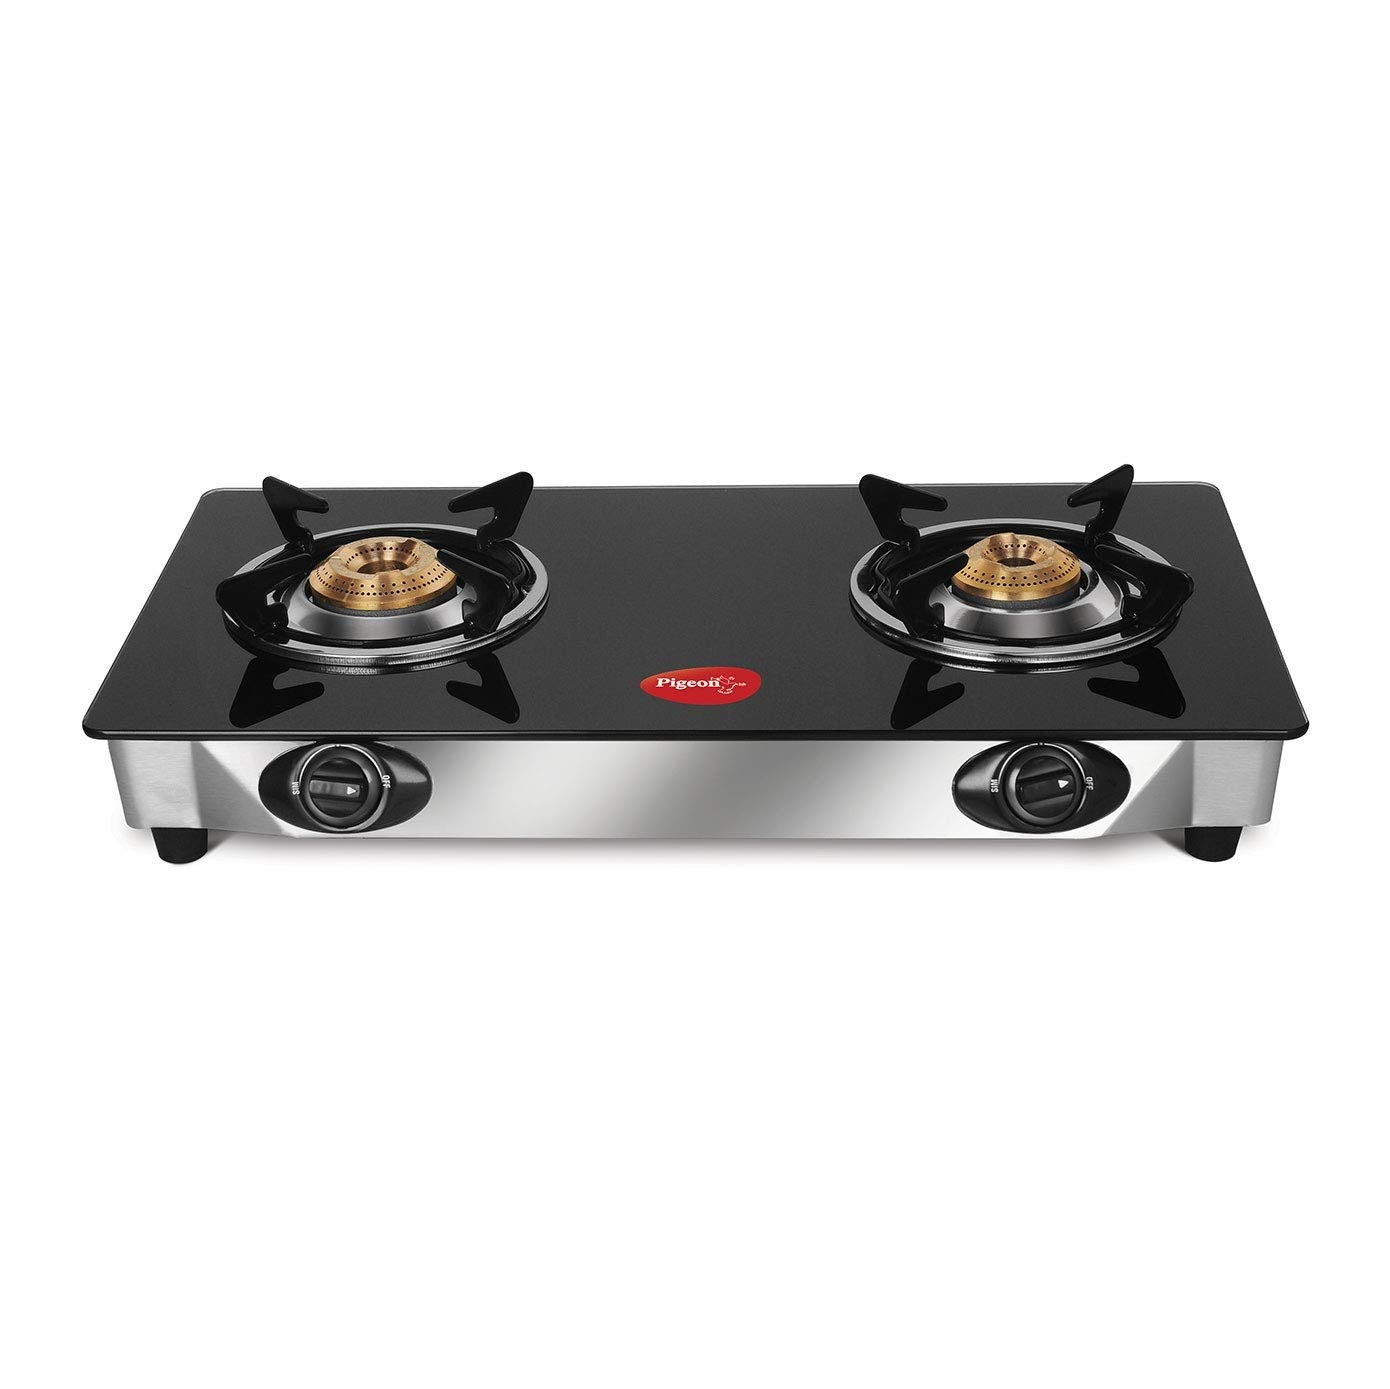 Best Gas Stove in India 2021